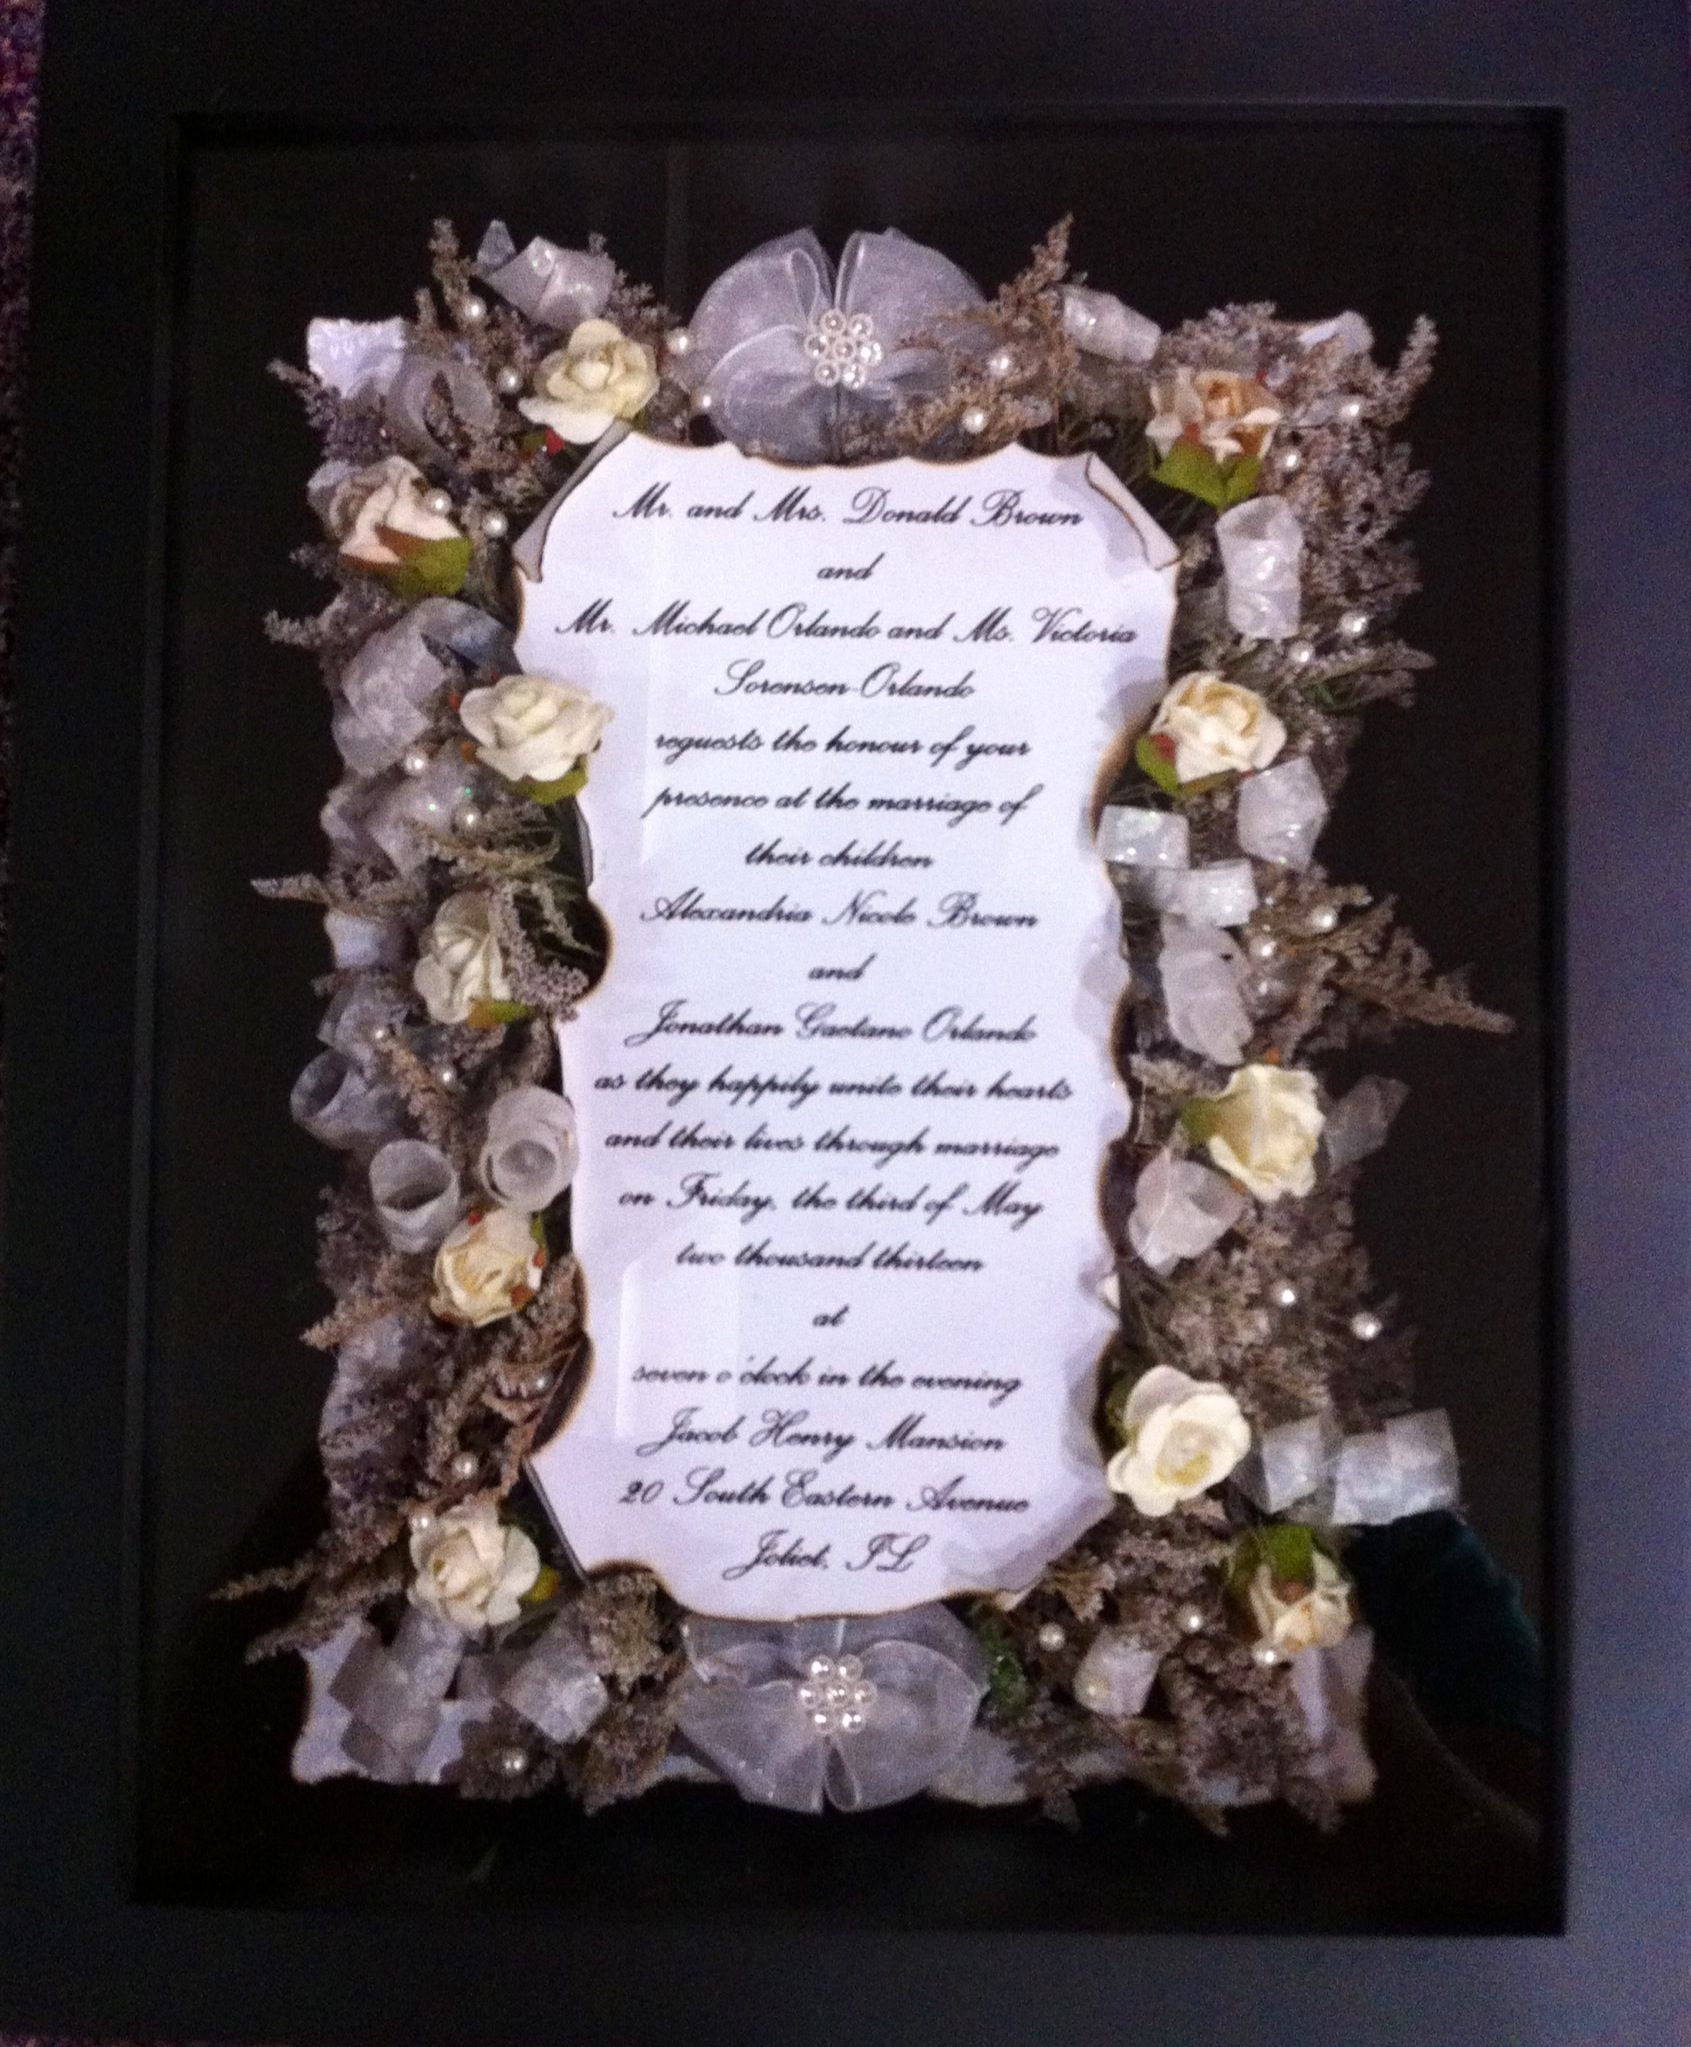 Another wedding invite keepsake | Wedding keepsake | Pinterest ...